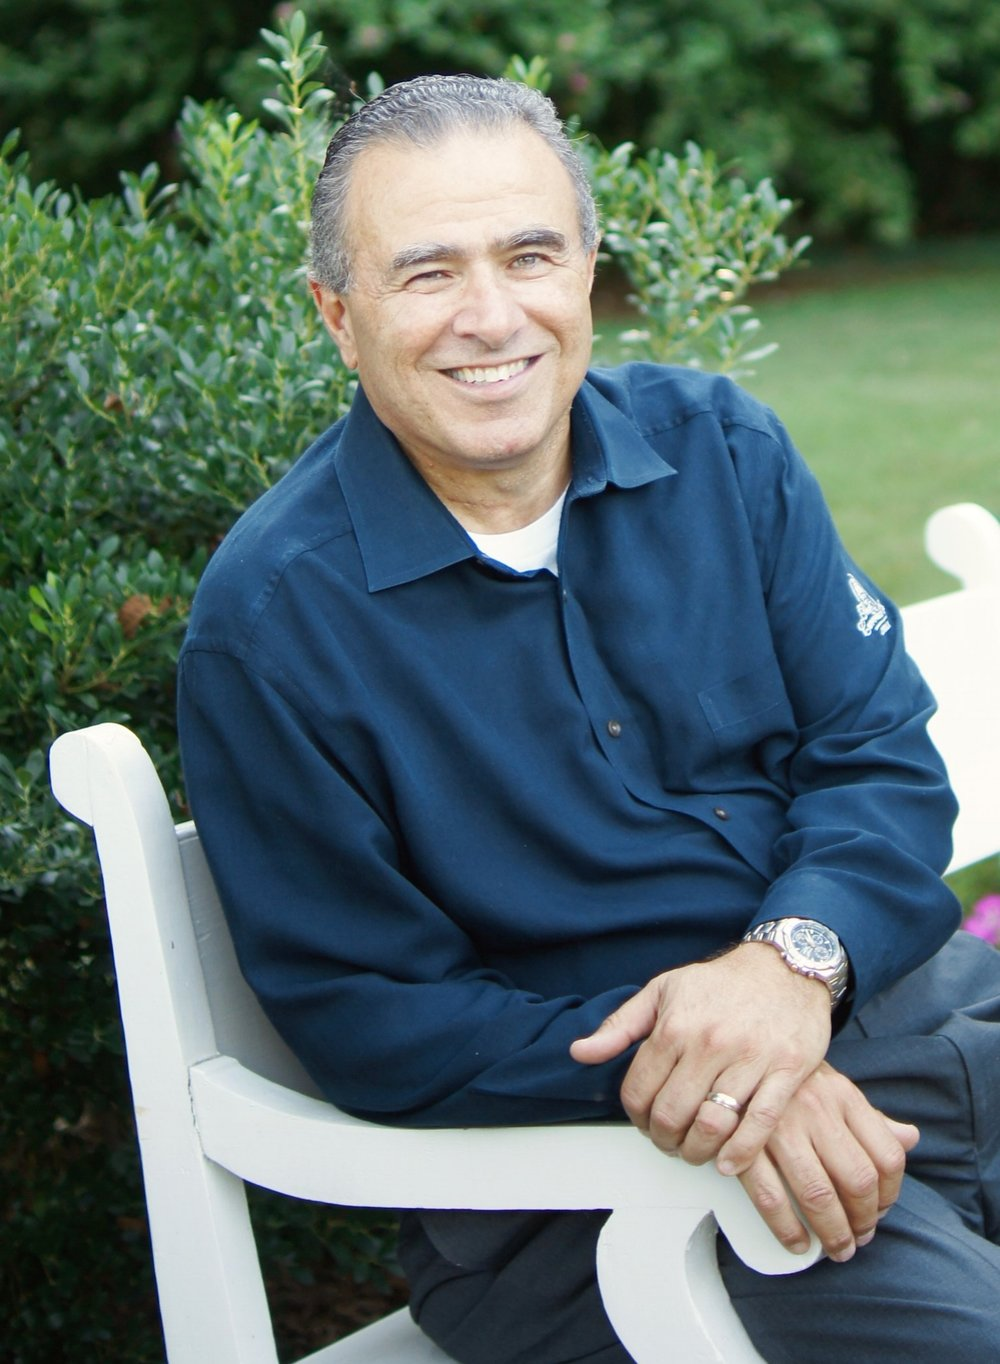 Dr. Chuck F. Betters, founder of MARKINC